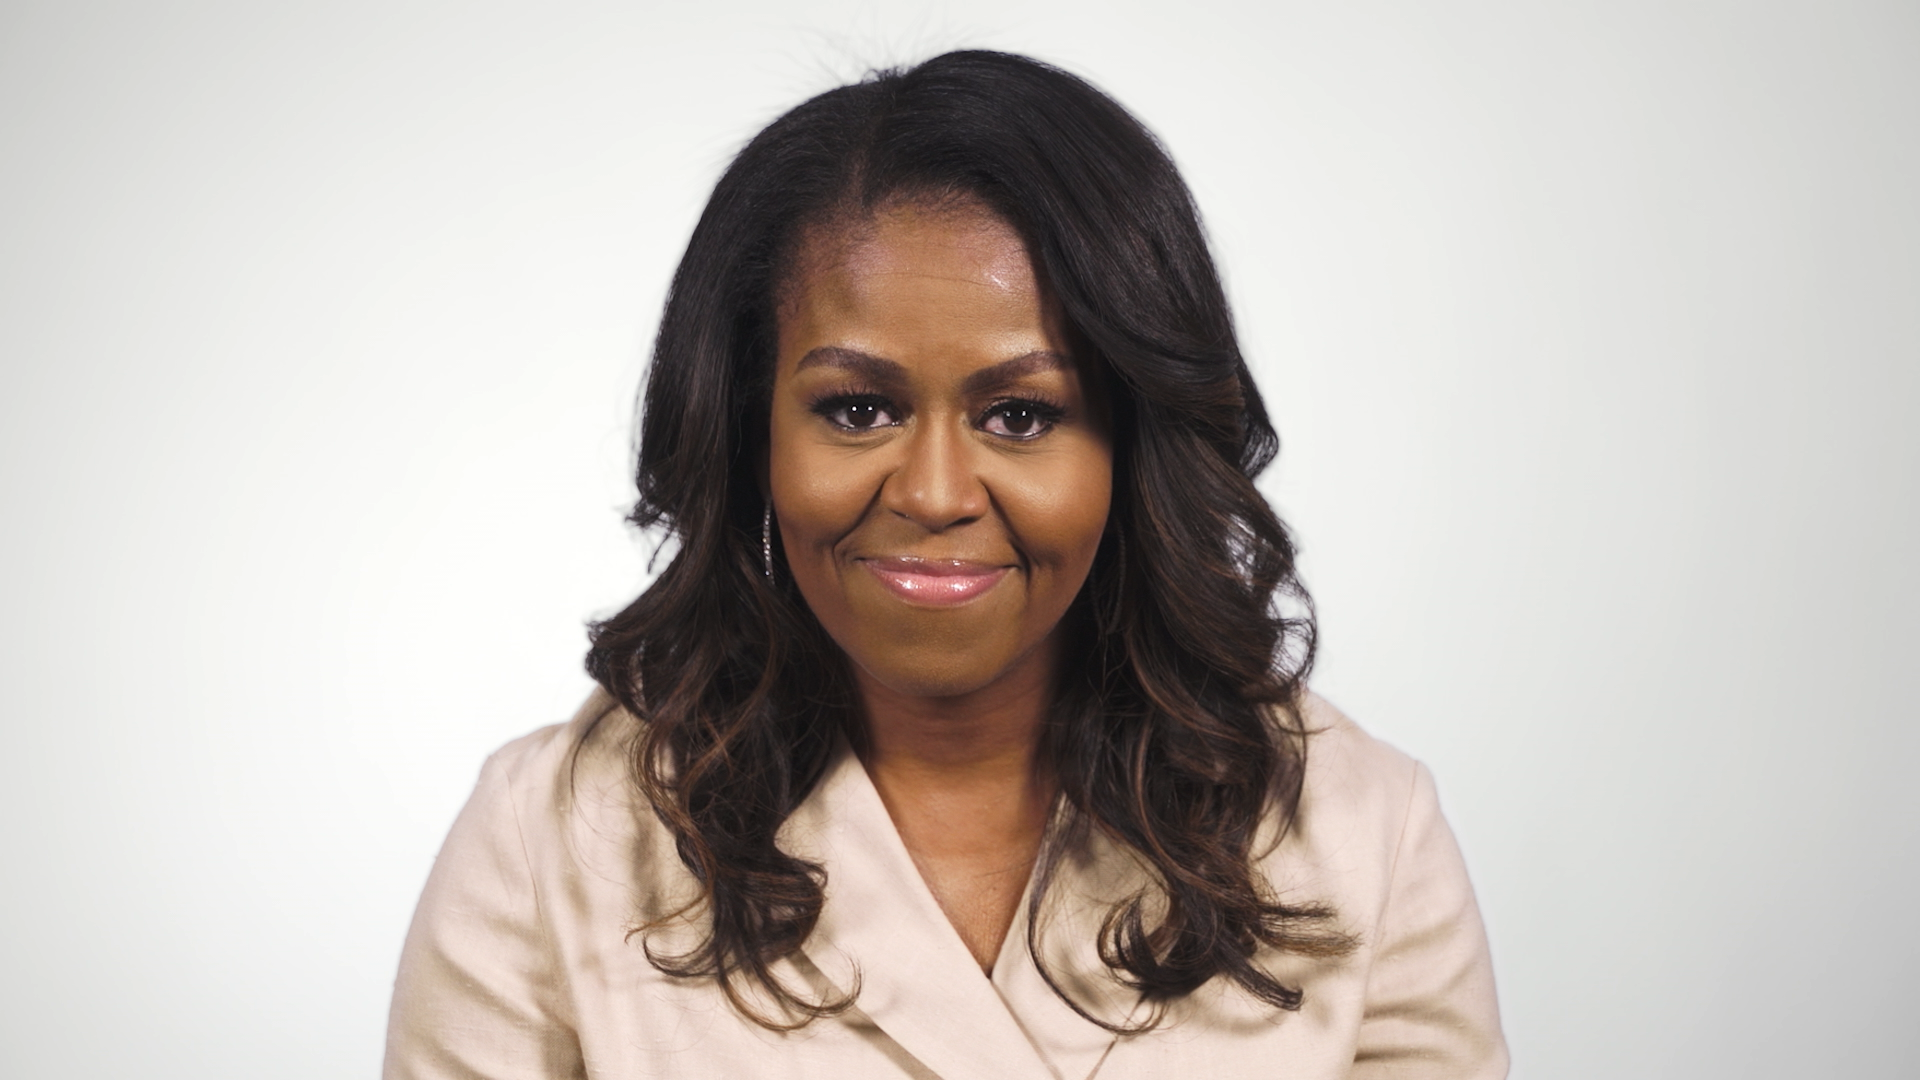 Michelle Obama Recruits Stars for 'Worth It' Campaign to Promote Education